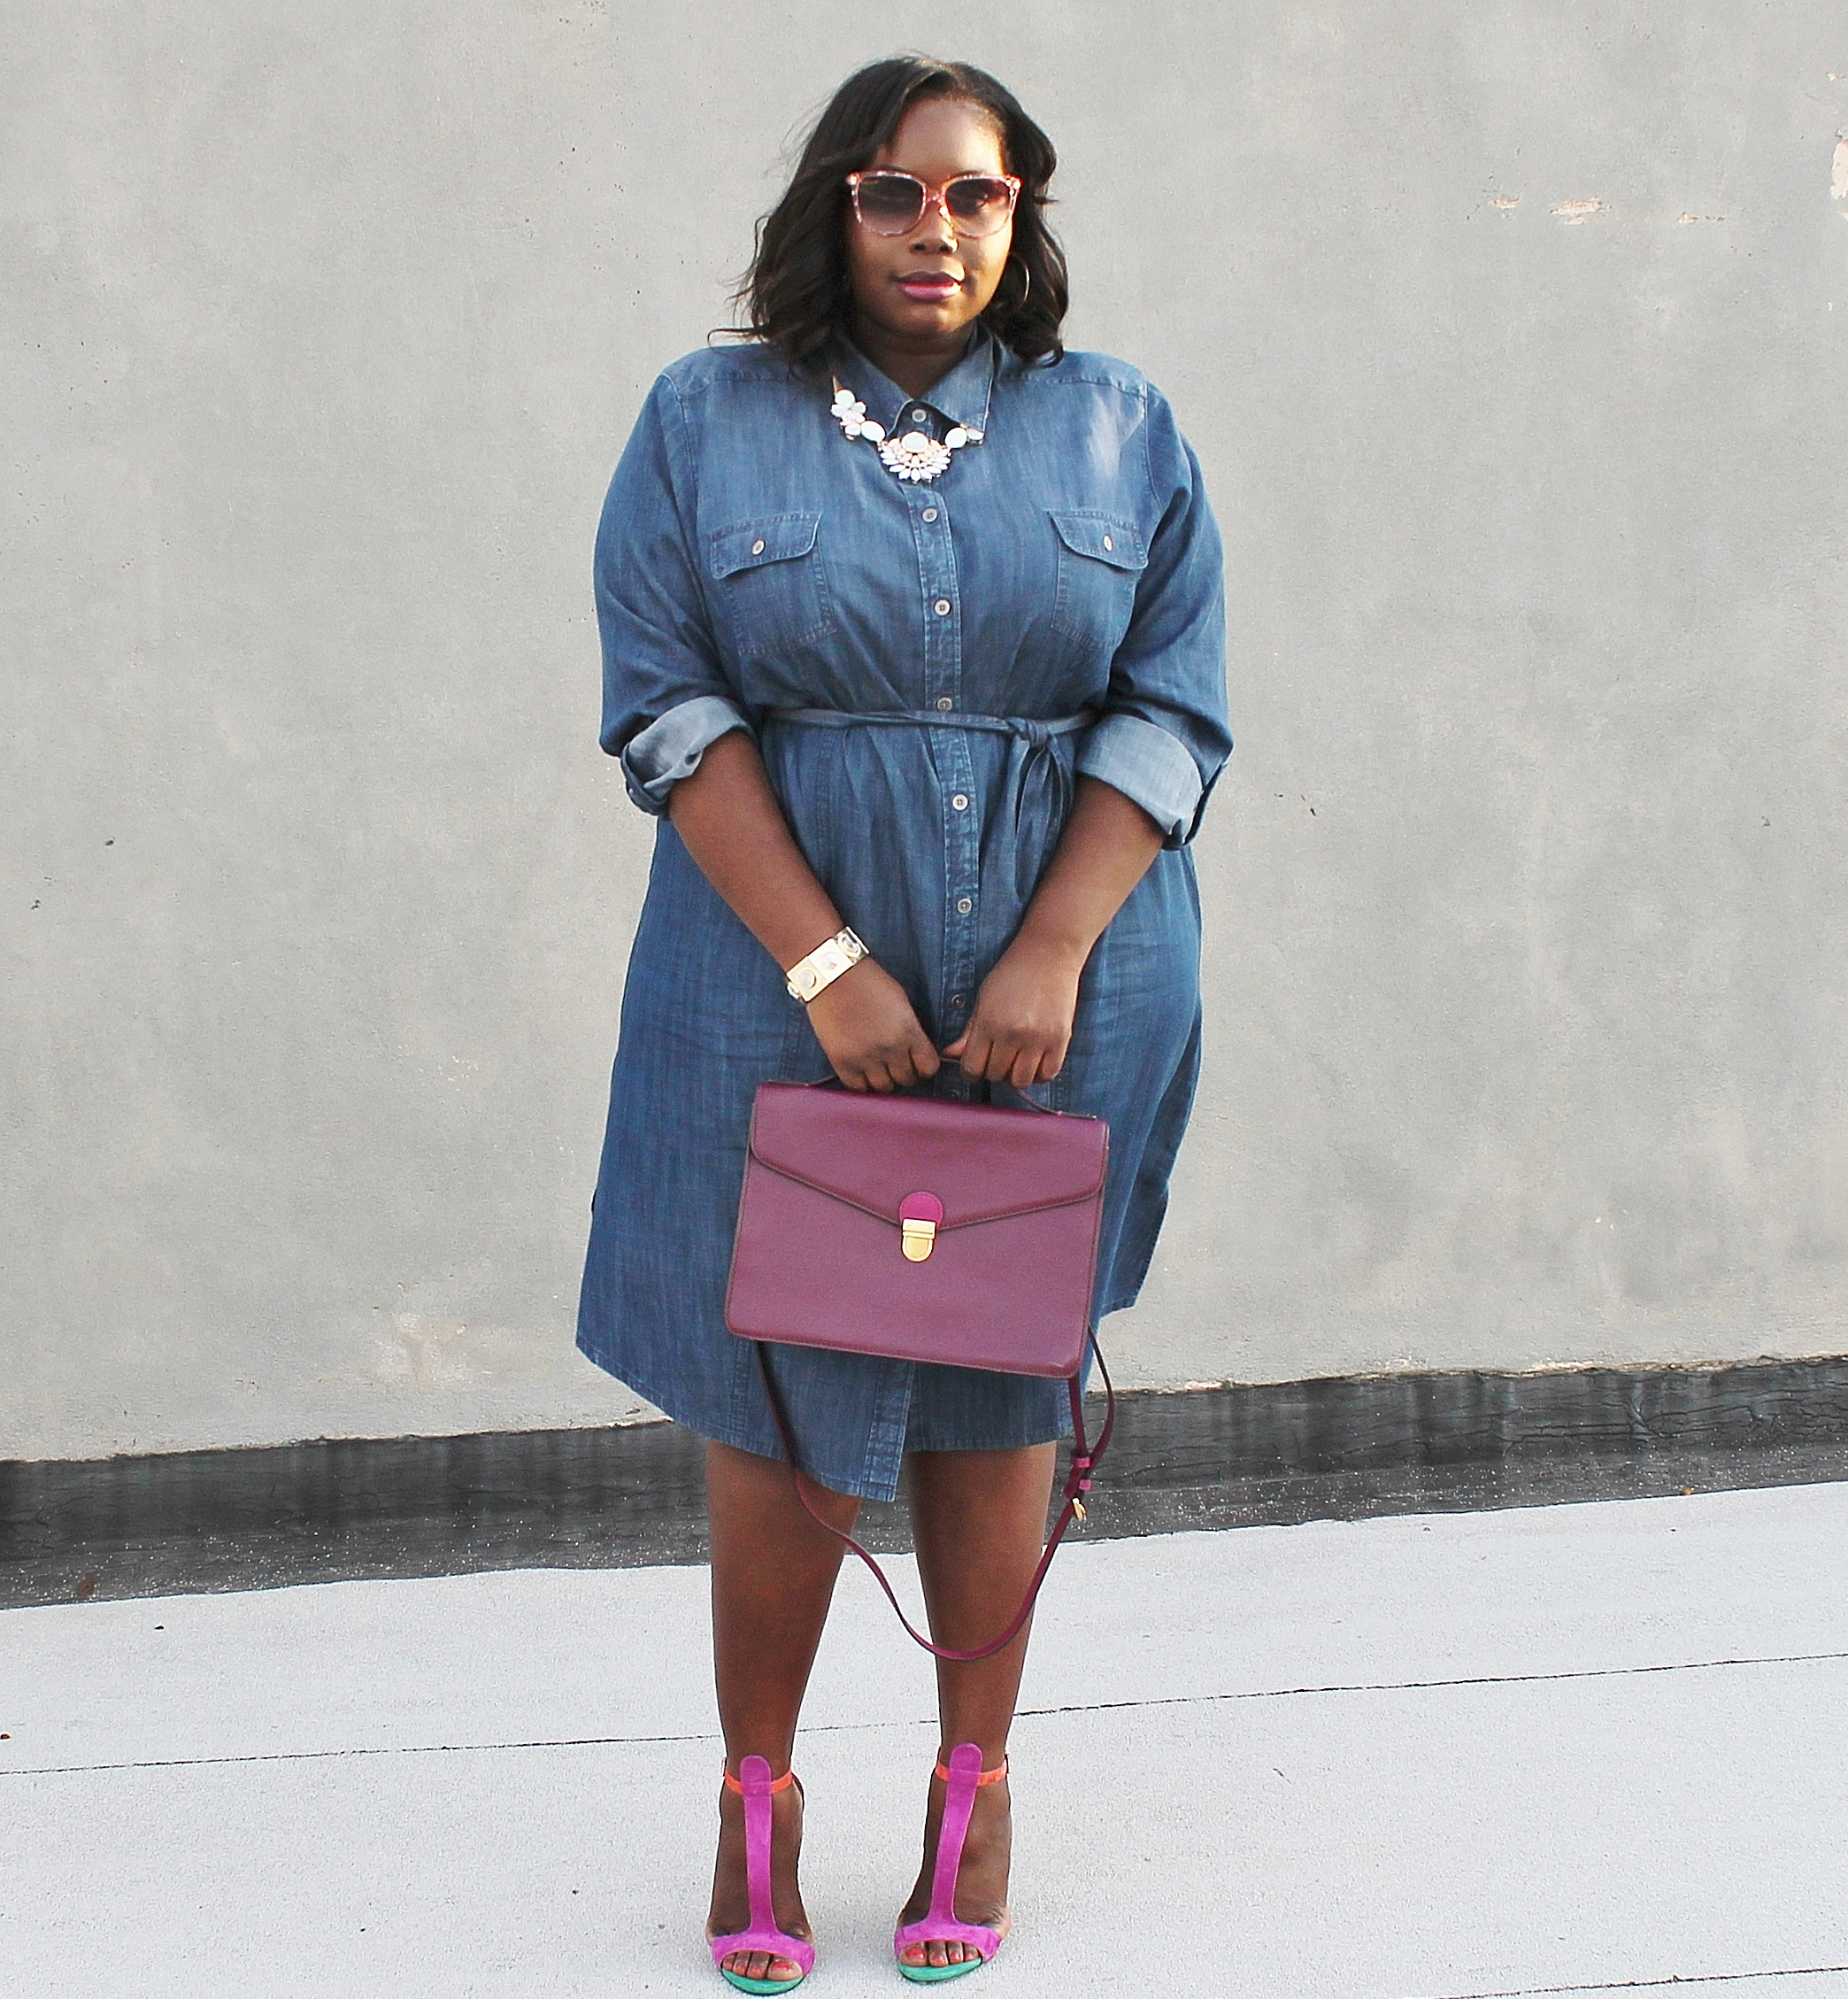 d21e2c967a4 (Read plus size denim shirtdress post HERE). It's been about 2 weeks since  spring has showed up so I thought the breezy 70 degree weather was the  perfect ...